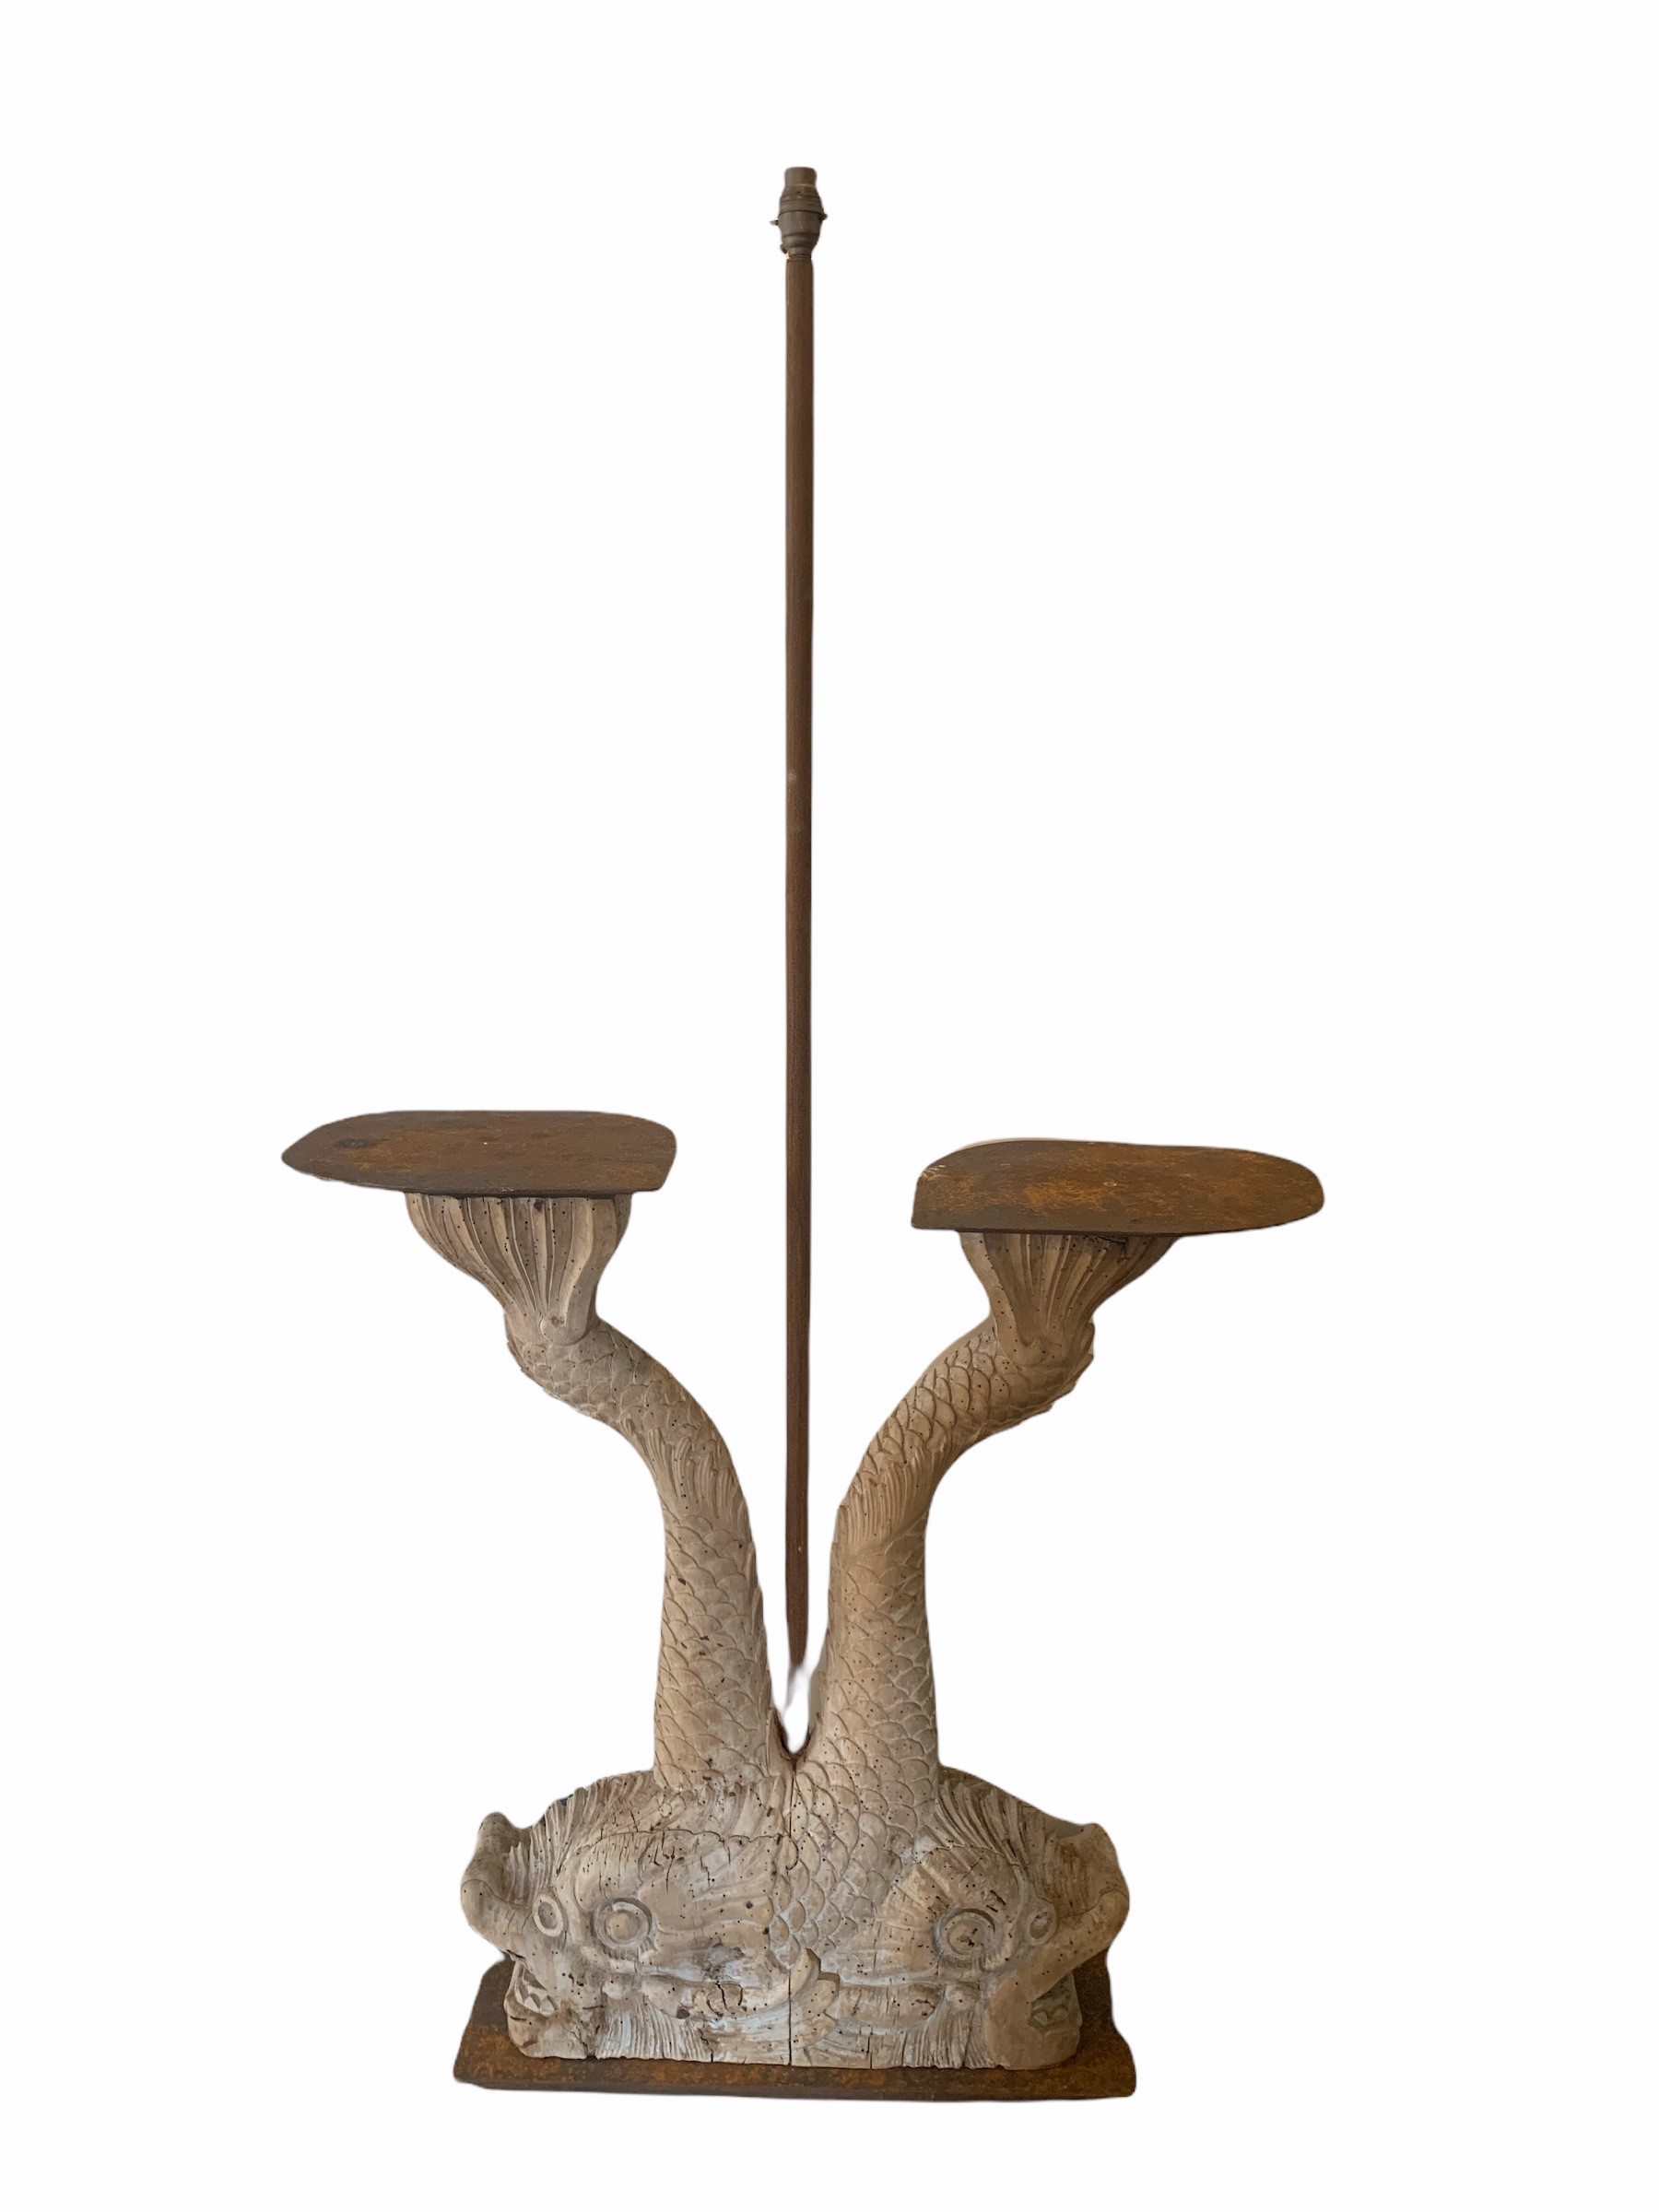 A DECORATIVE 19TH CENTURY & LATER CARVED WOOD OCCASIONAL LAMP TABLE FORMED AS TWO DIVING